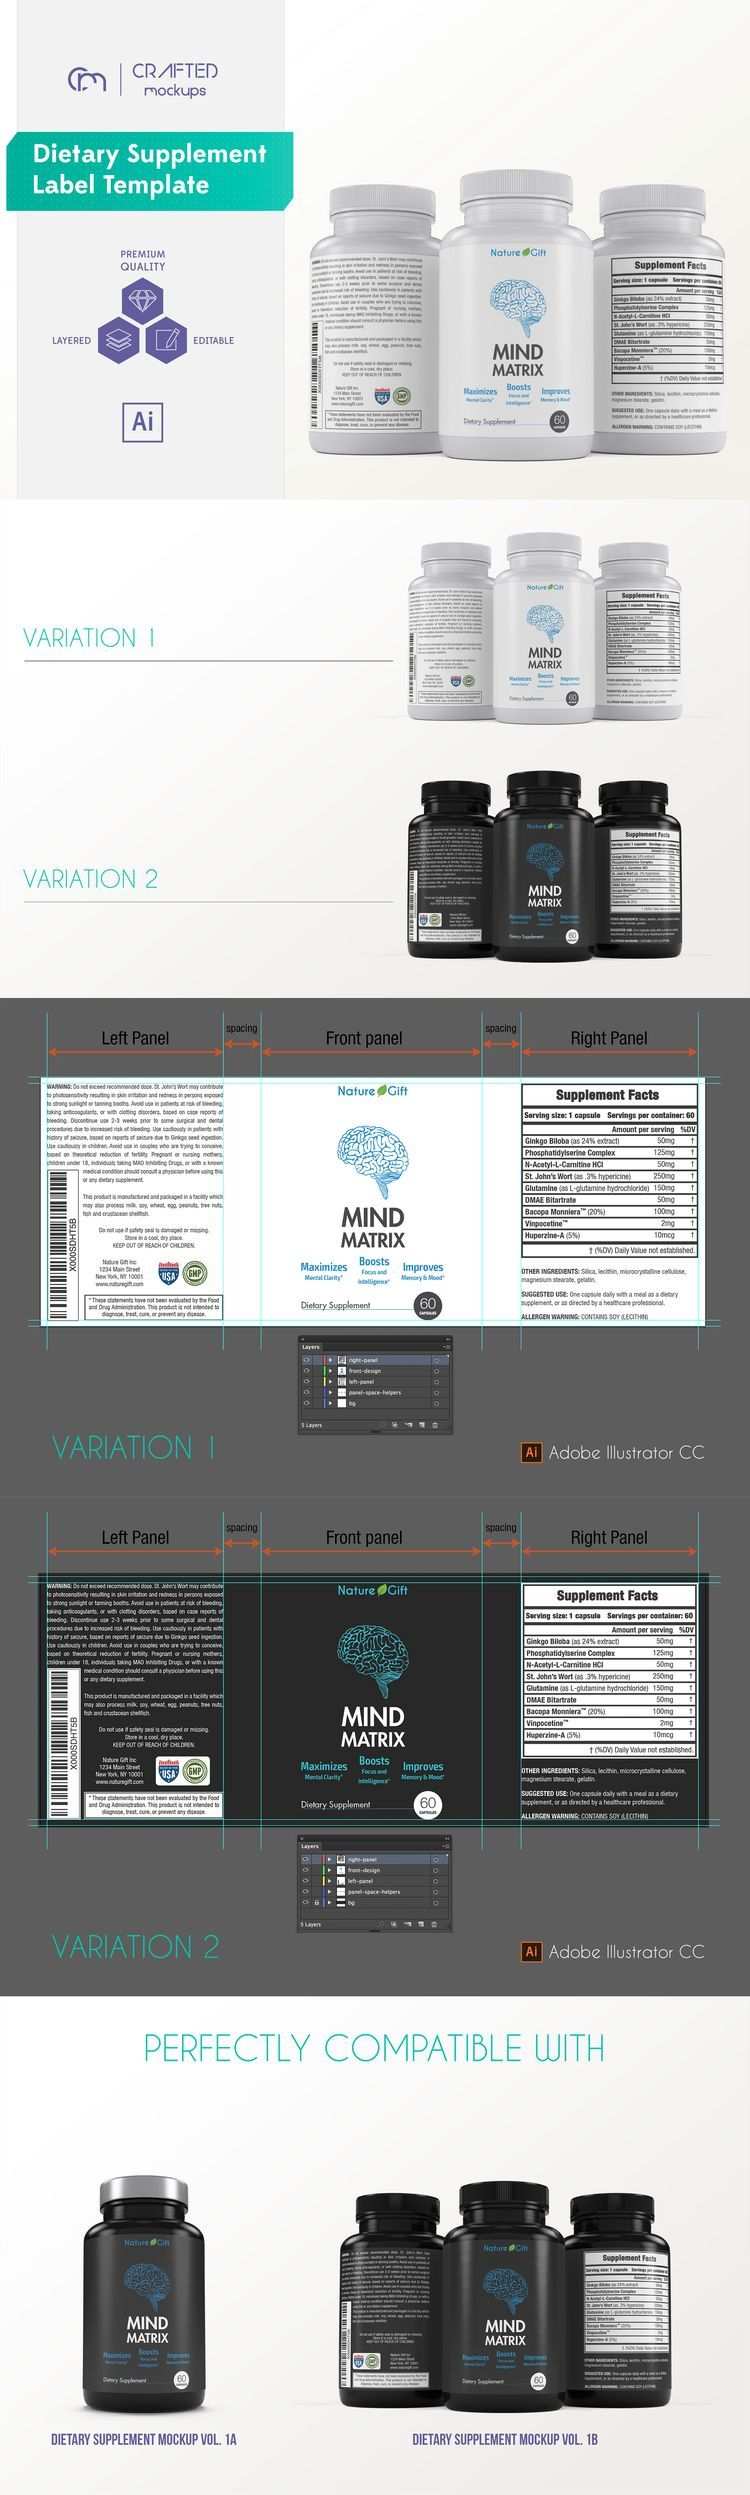 Pin by Yakushev on Vitamins and Supplements | Pinterest | Label ...